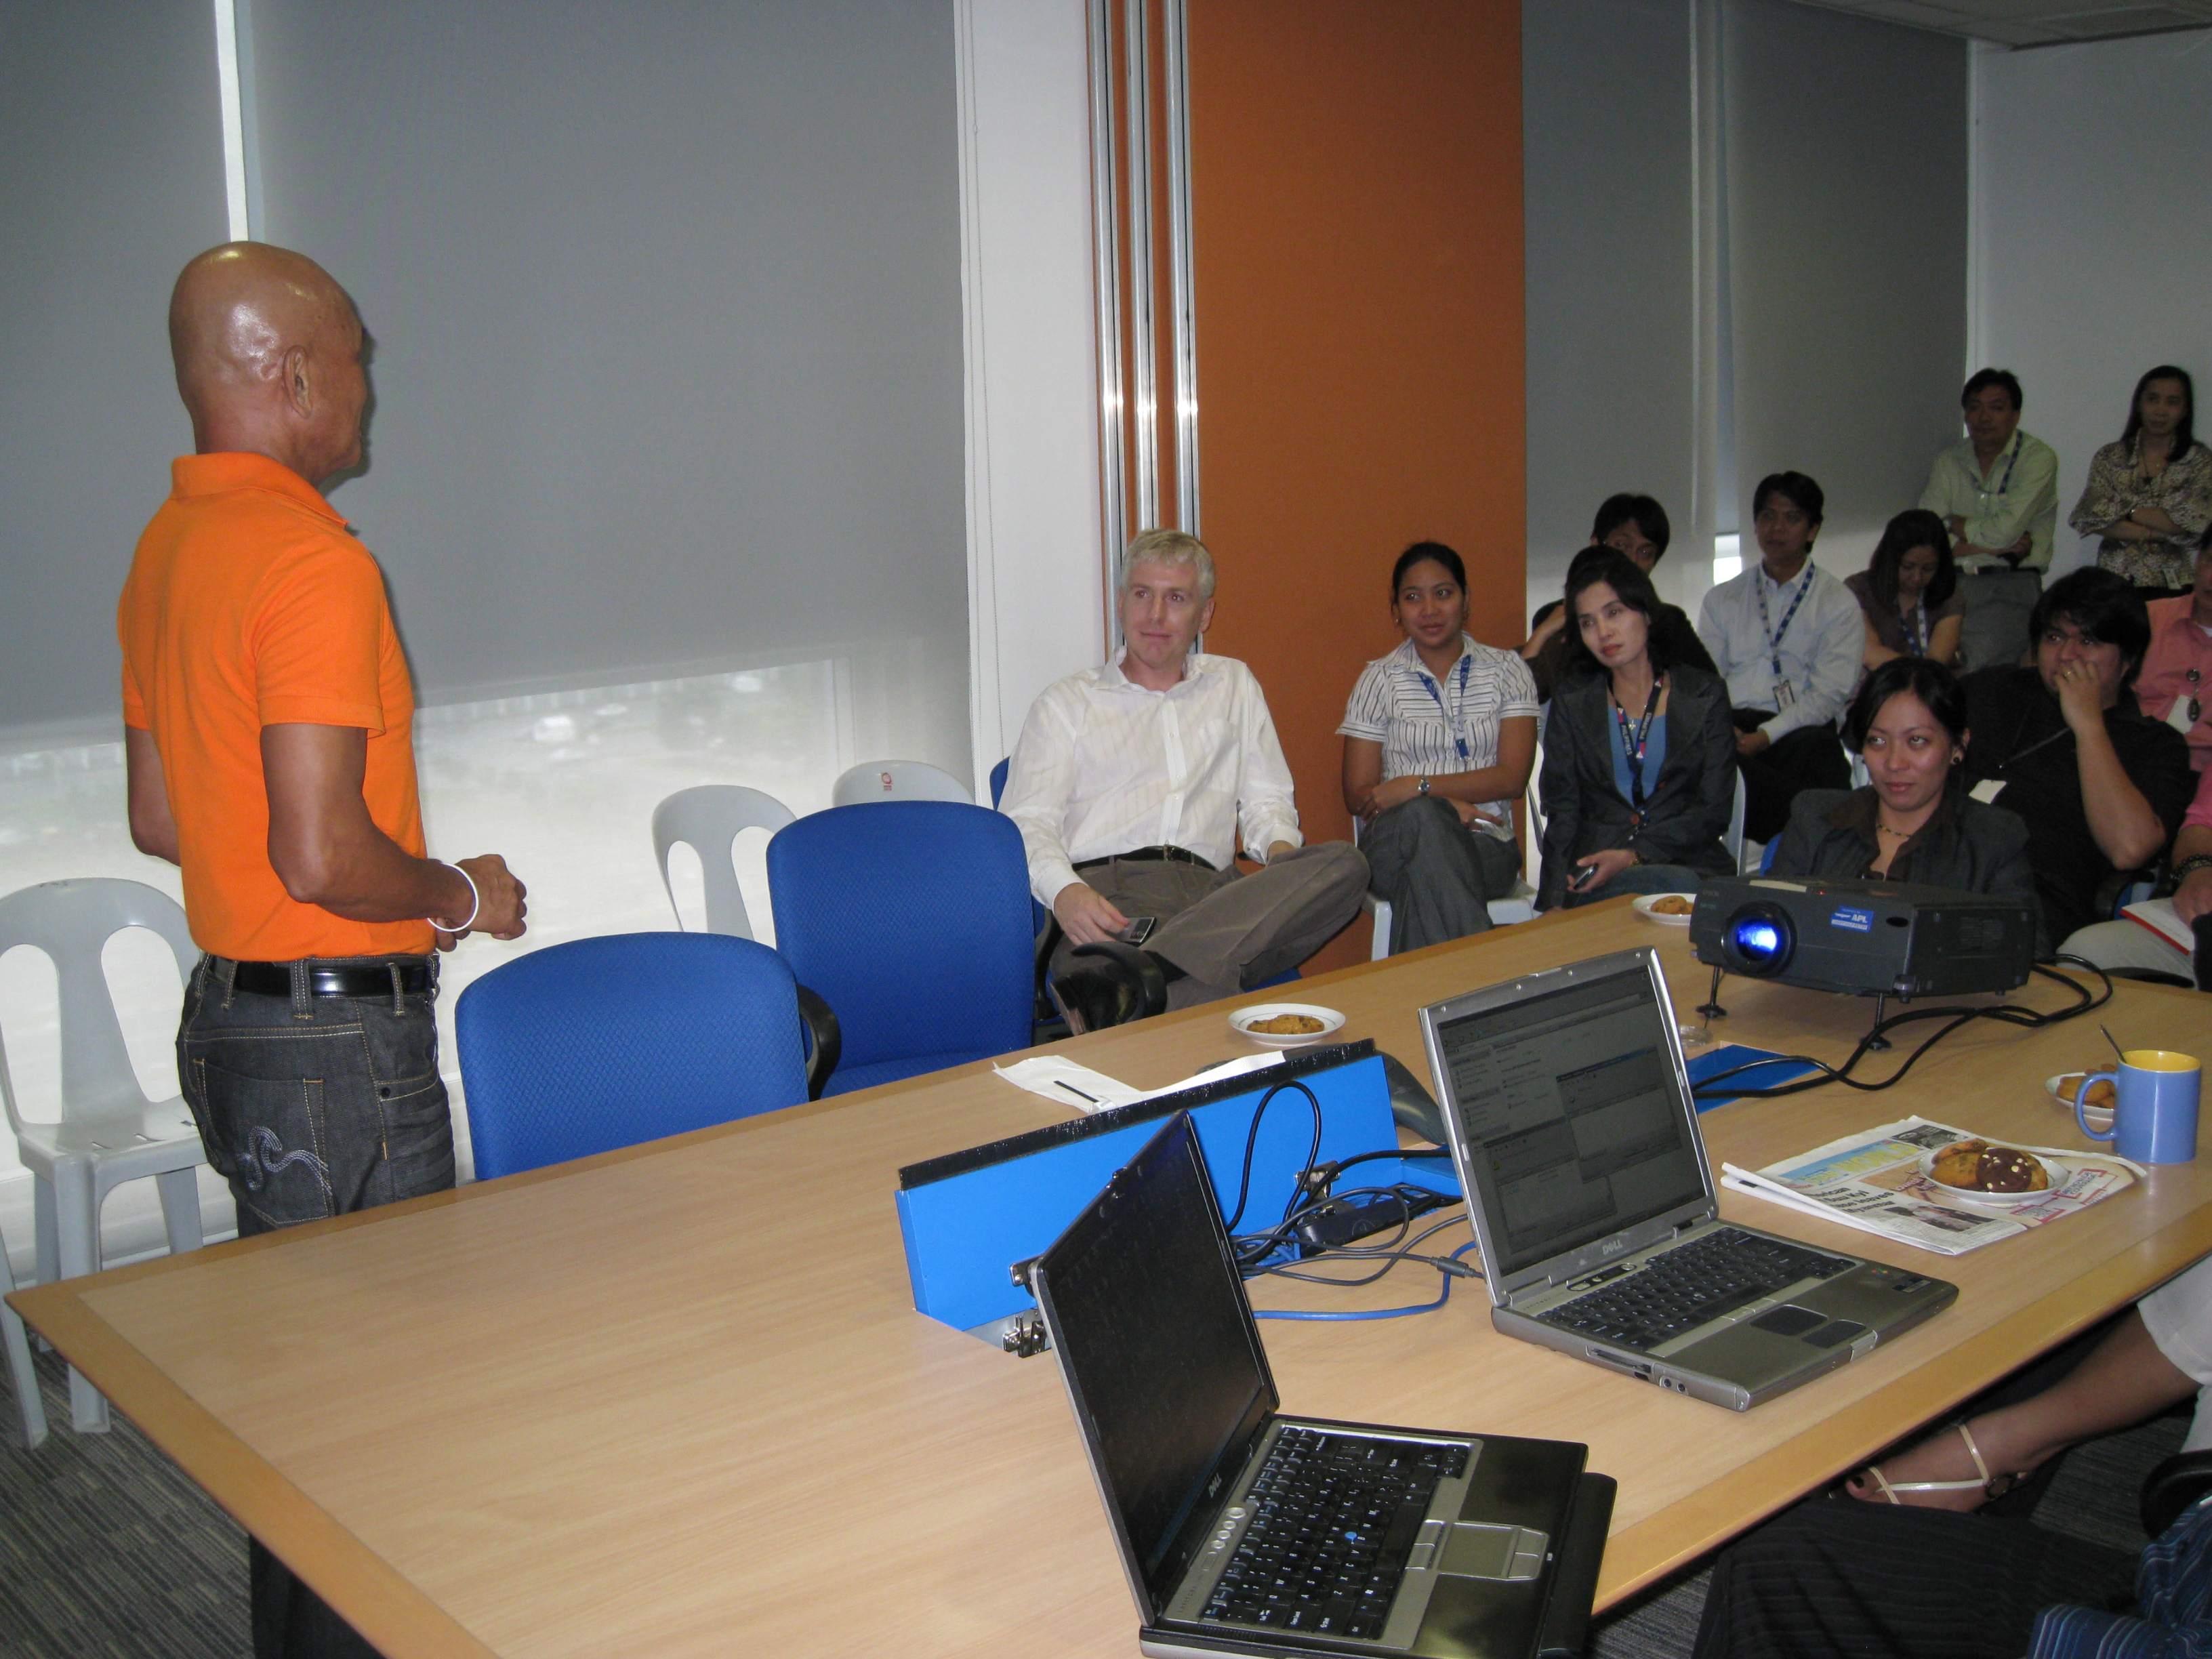 Maurice McKeating of APL led the participants